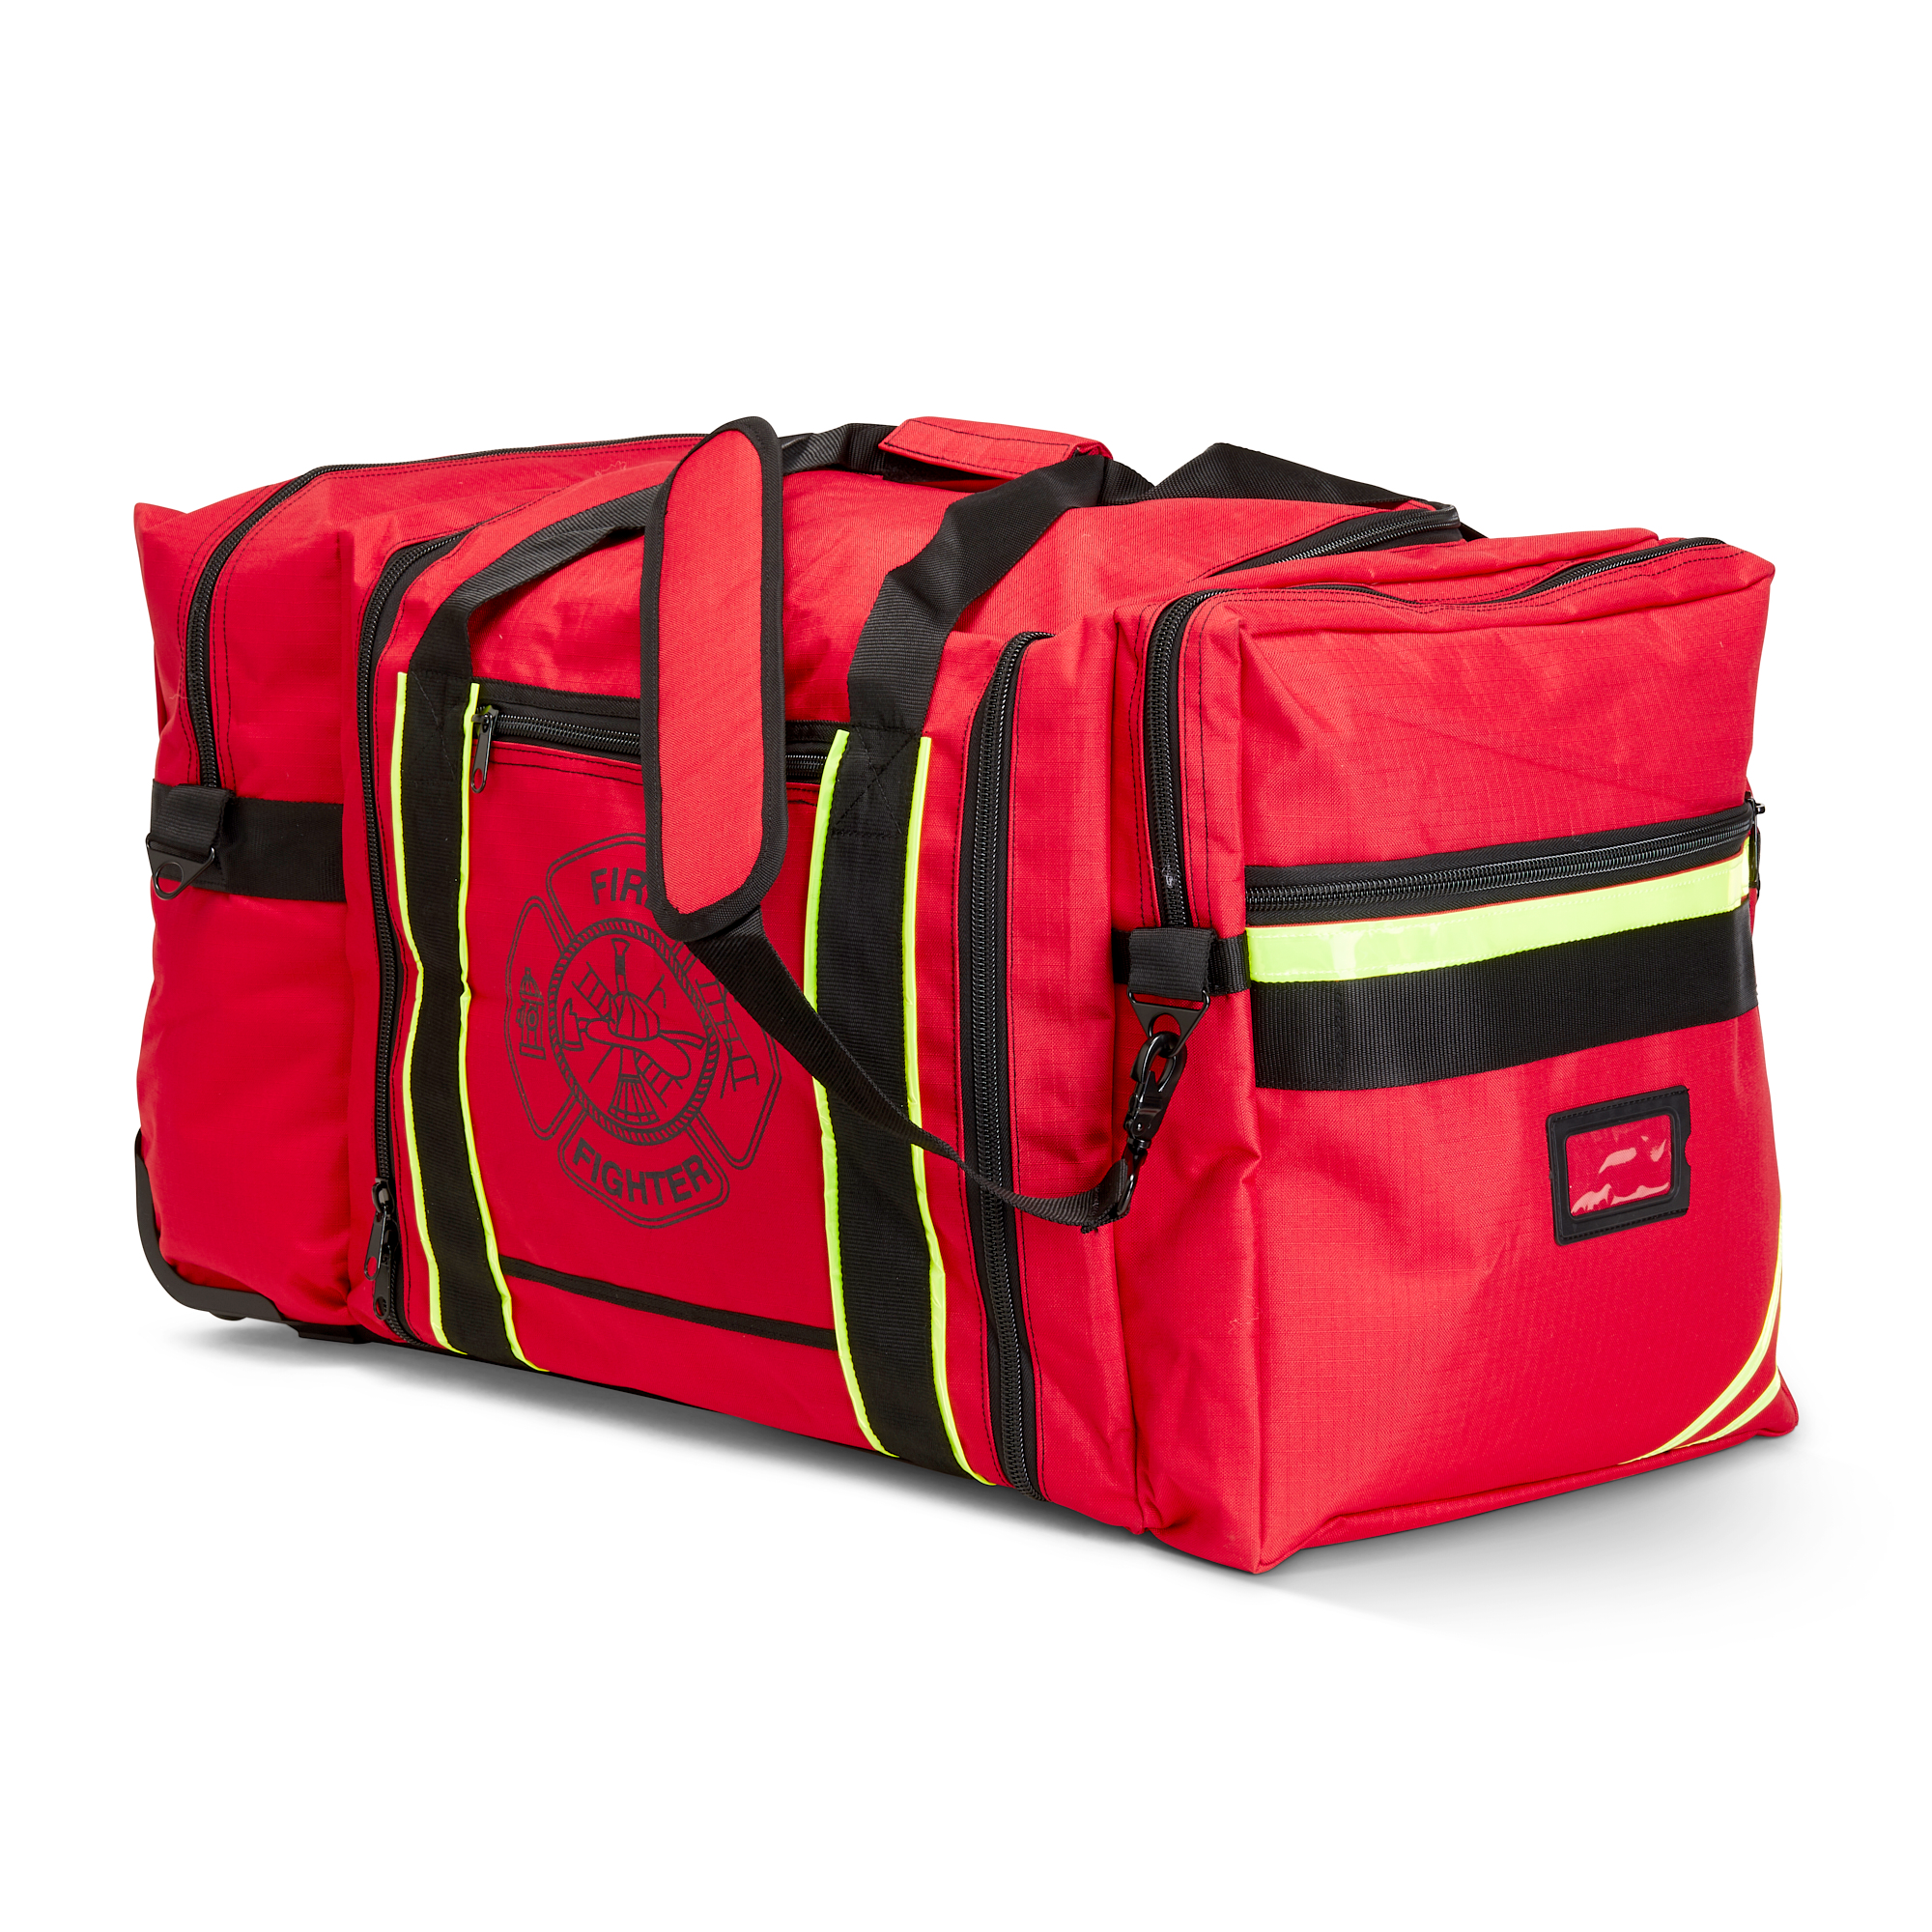 TheFireStore Wheeled Firefighter Jumbo Gear Bag with Reflective Trim and Maltese Cross